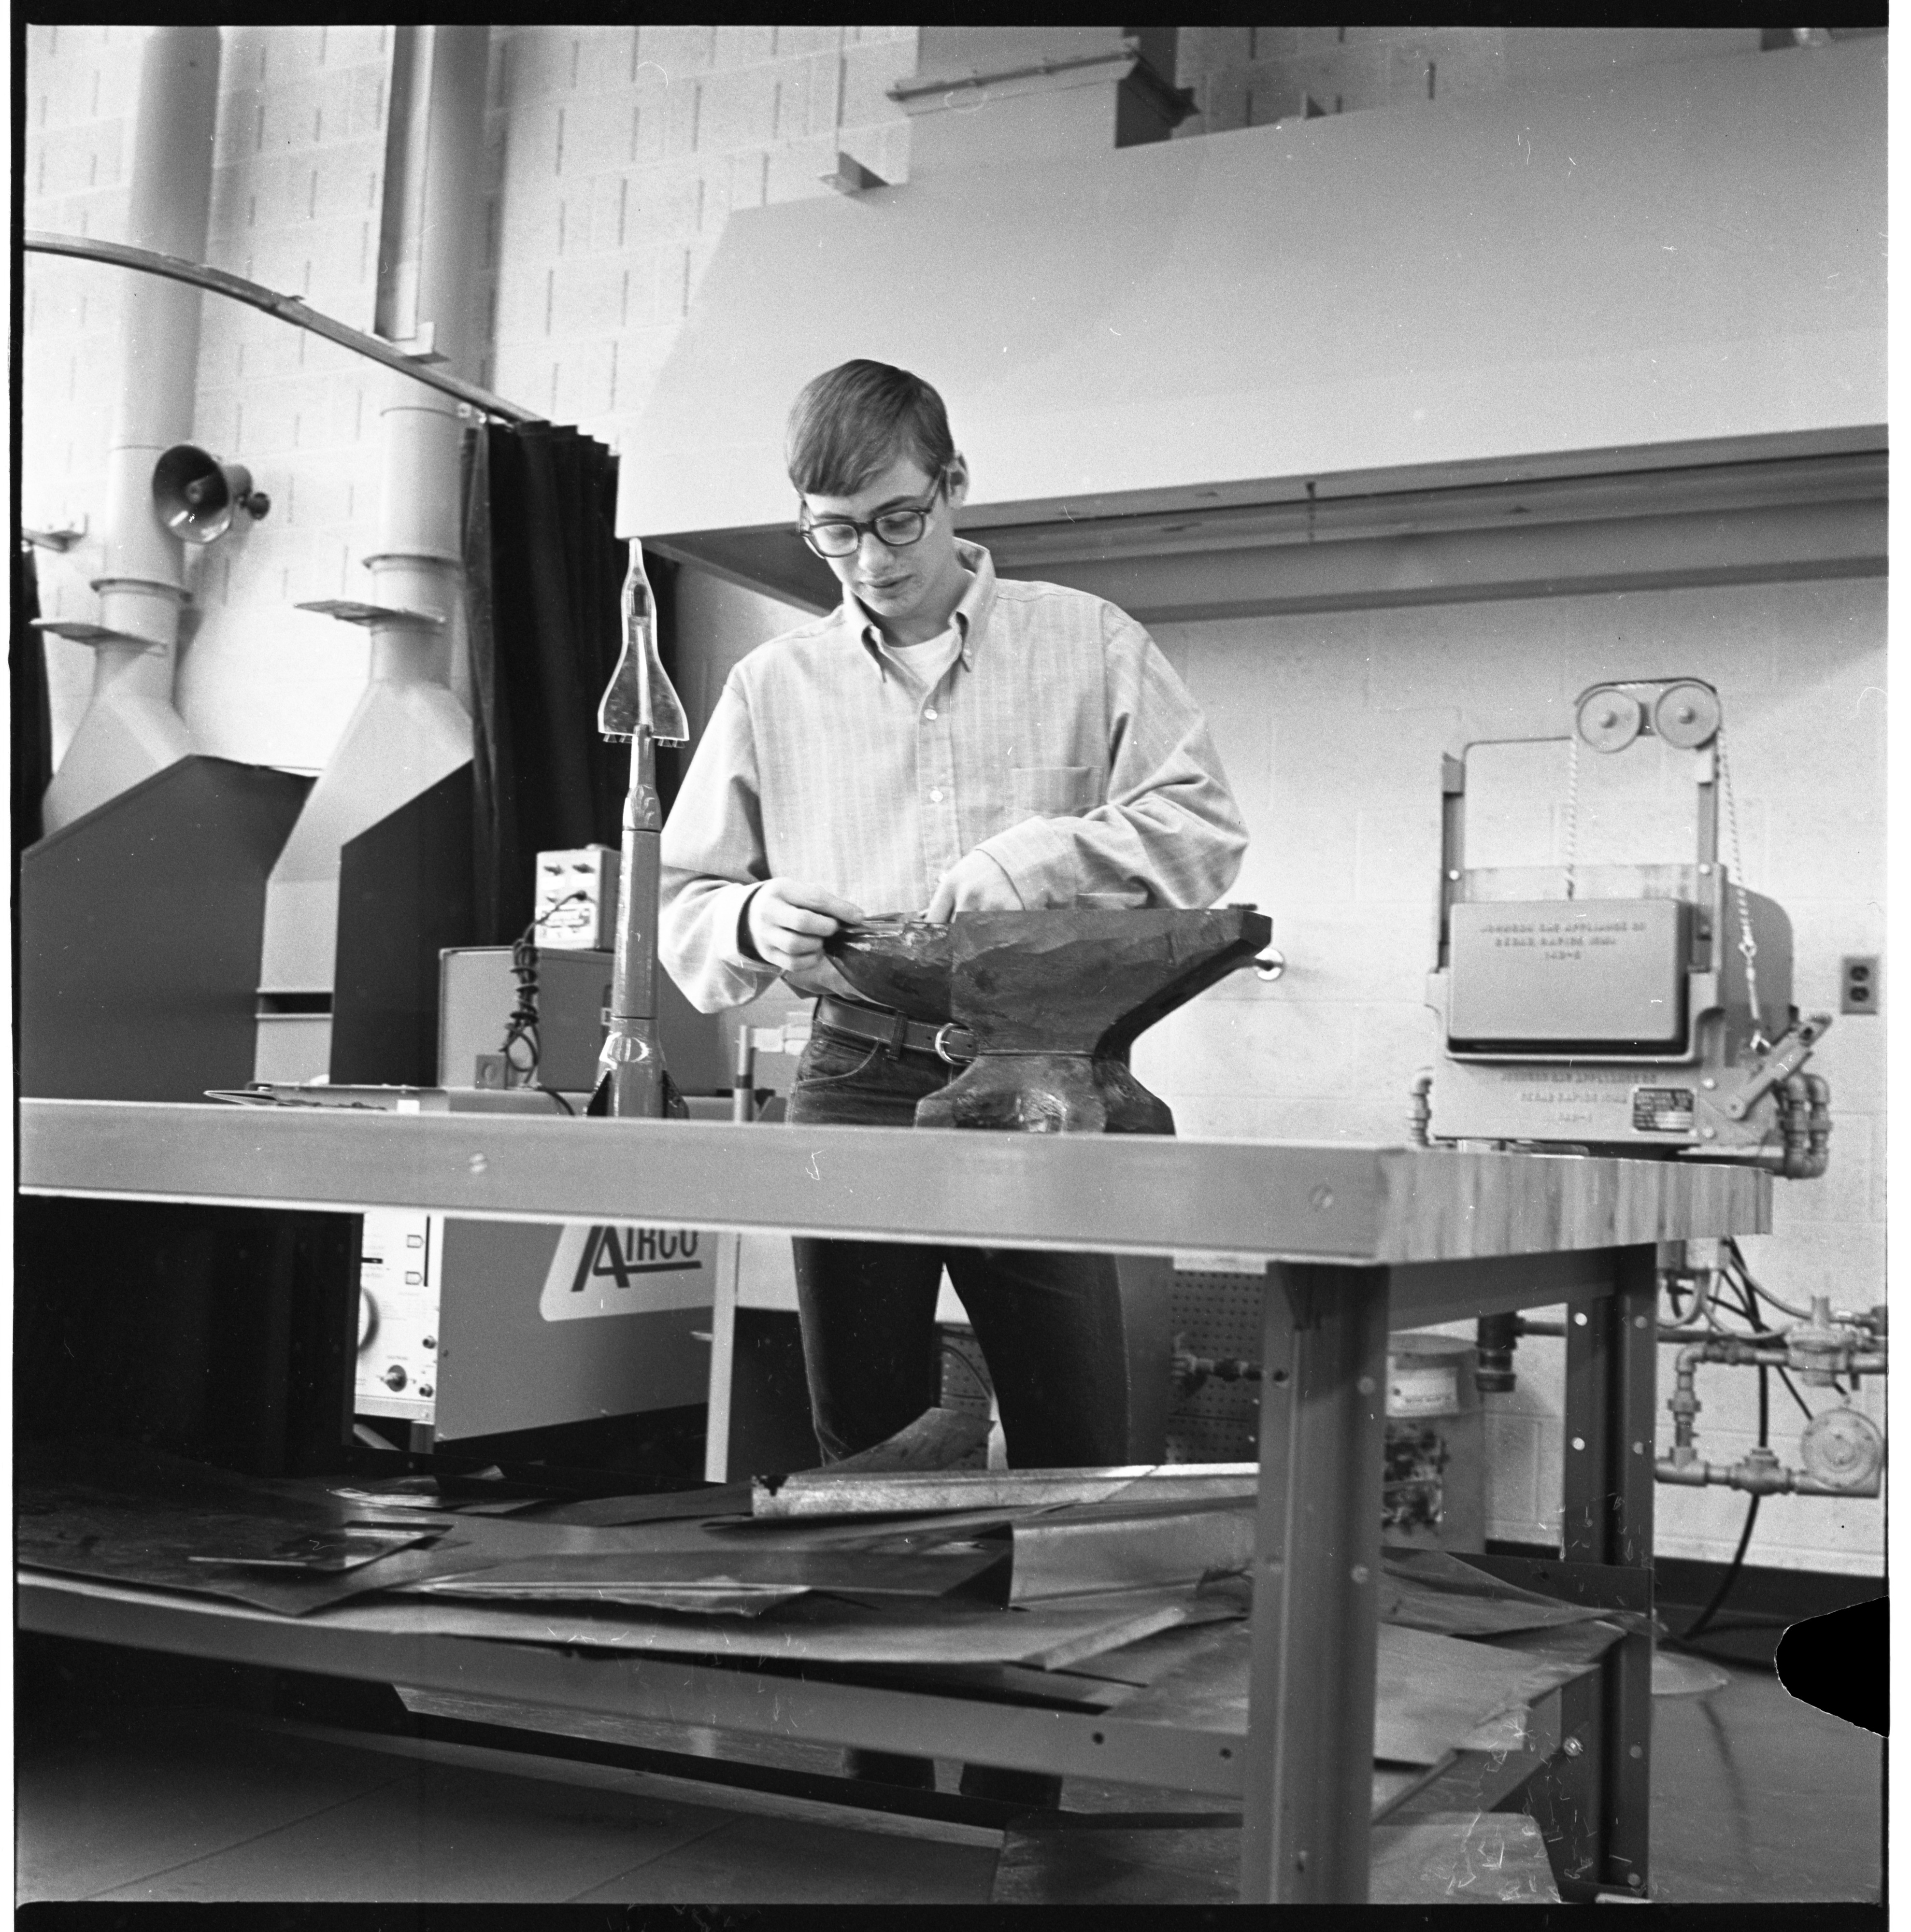 Huron High School Industrial Processes Class, January 1970 image